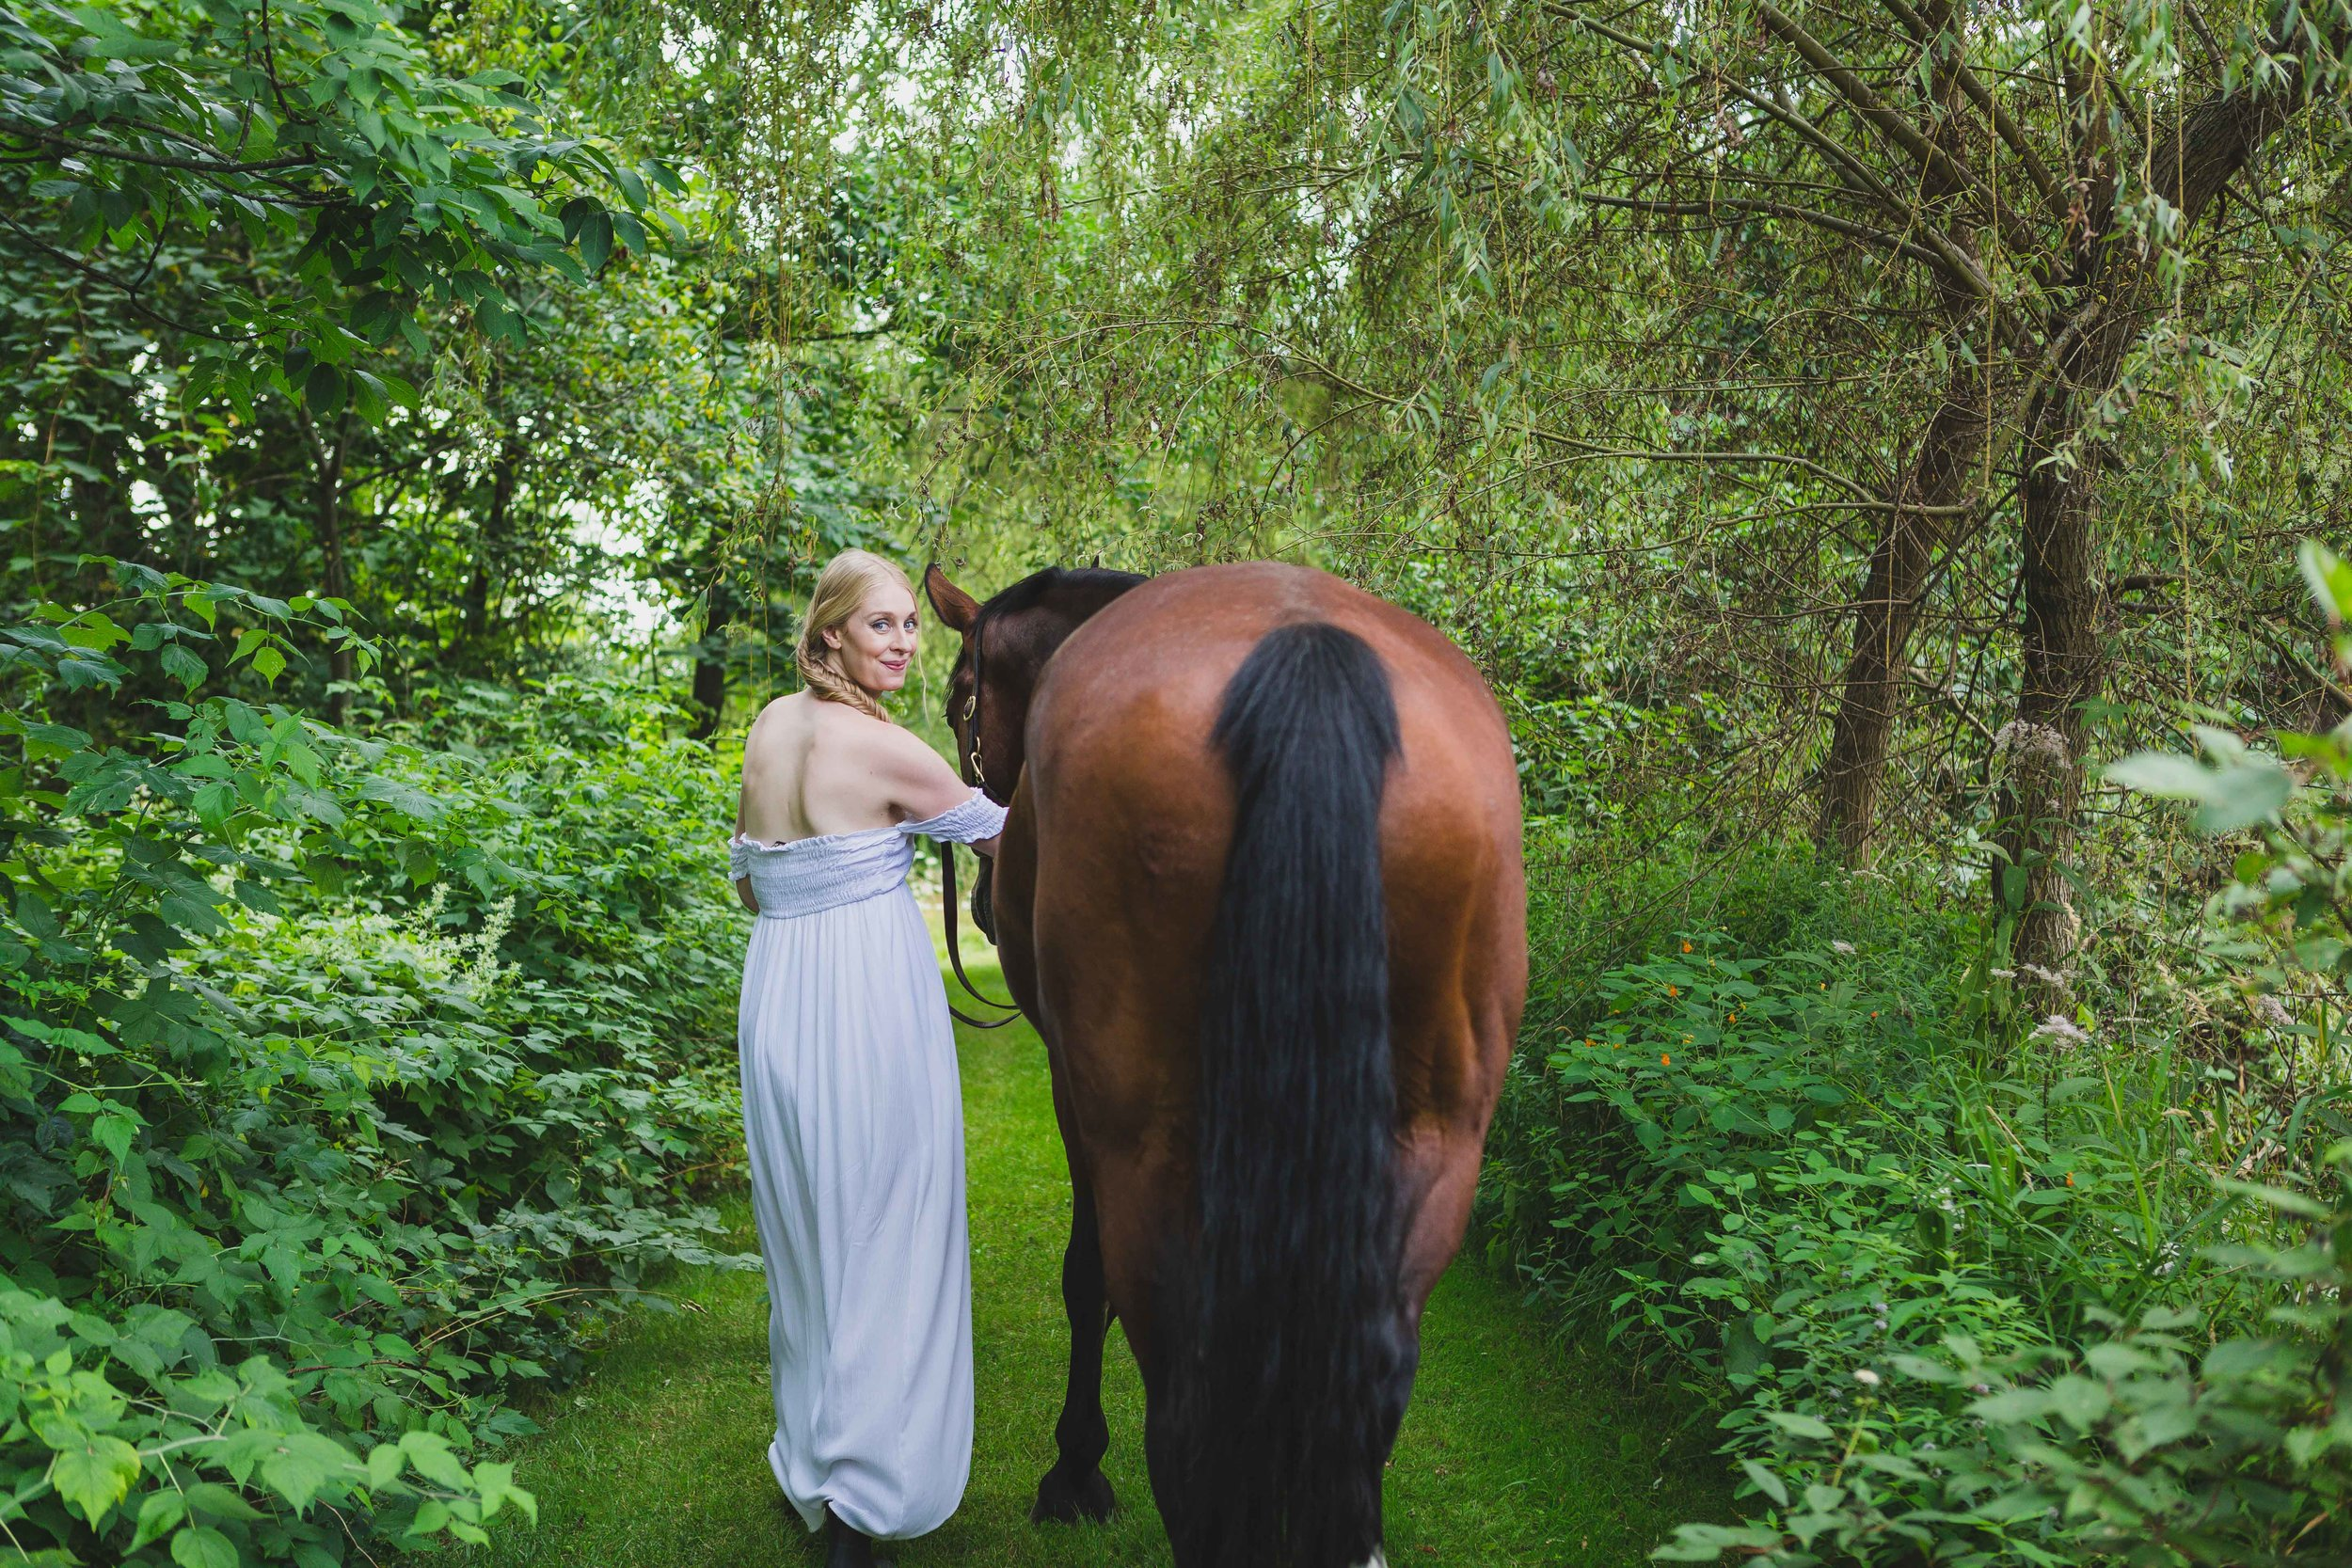 Shelly Burton, energy medicine woman, and her horse Peter journeying into wellness on healing lands.